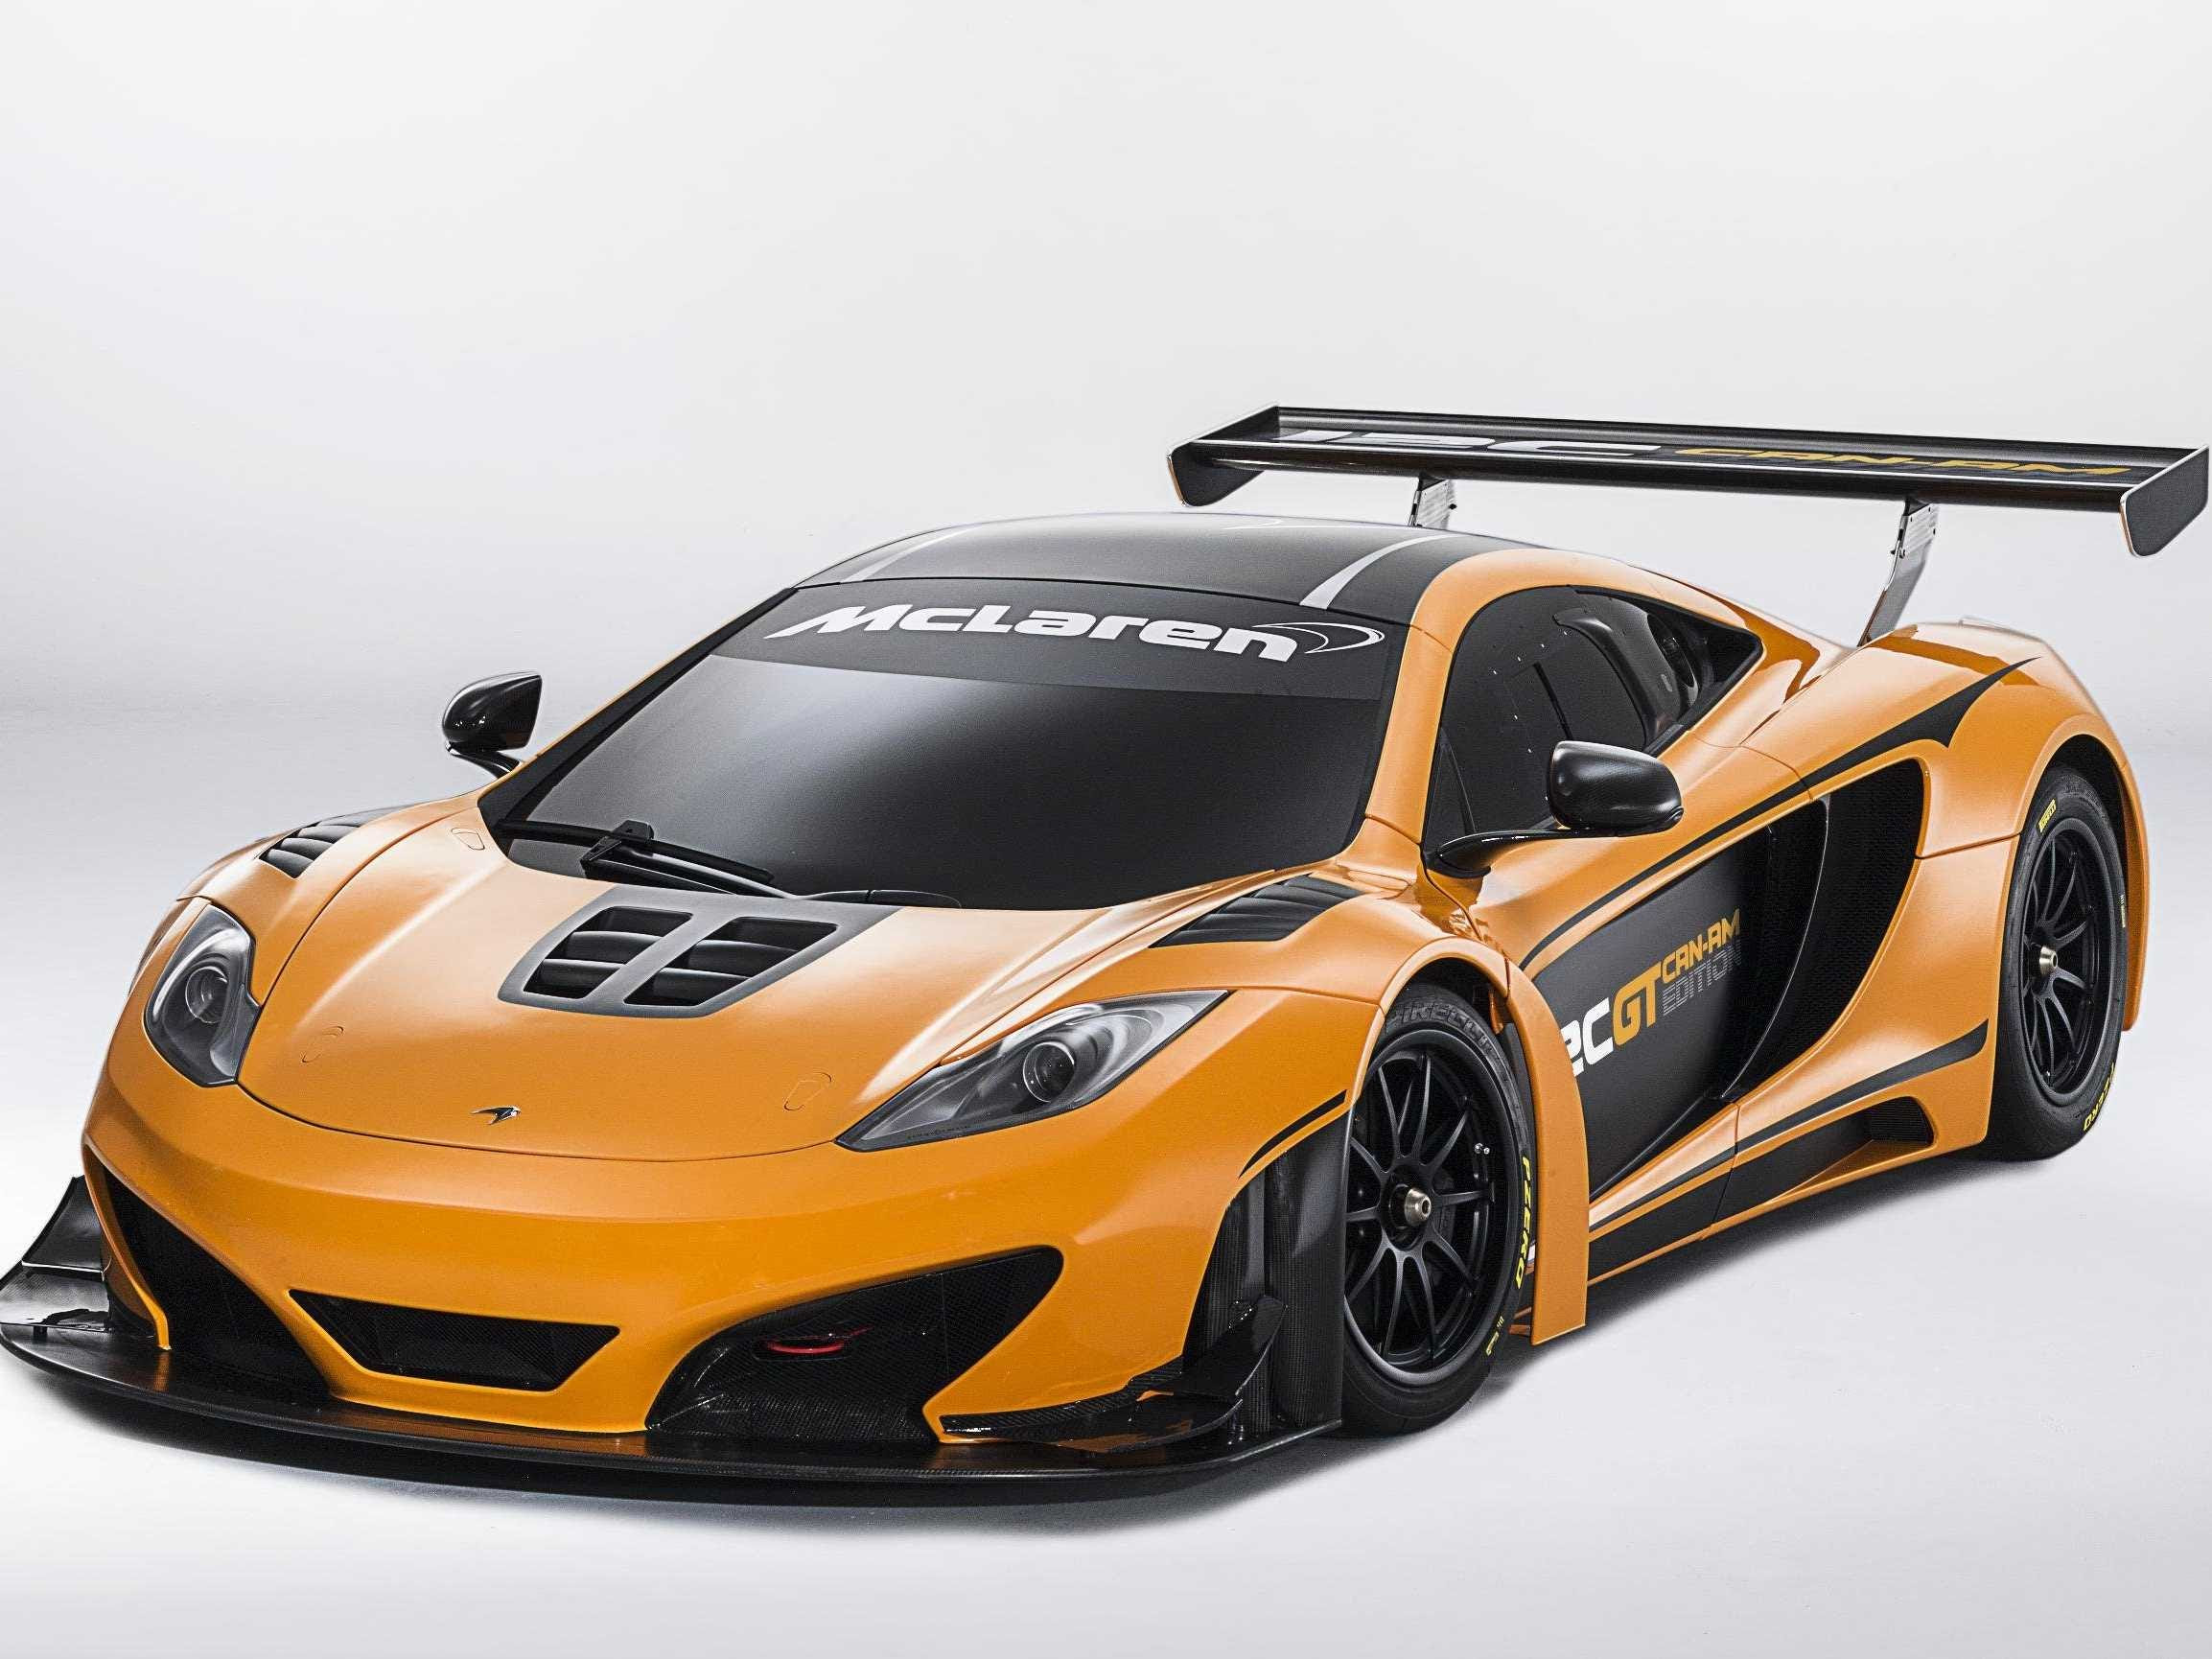 McLaren Is Building A $597,000 Track Car For Rich People Who Want To Race  Business Insider